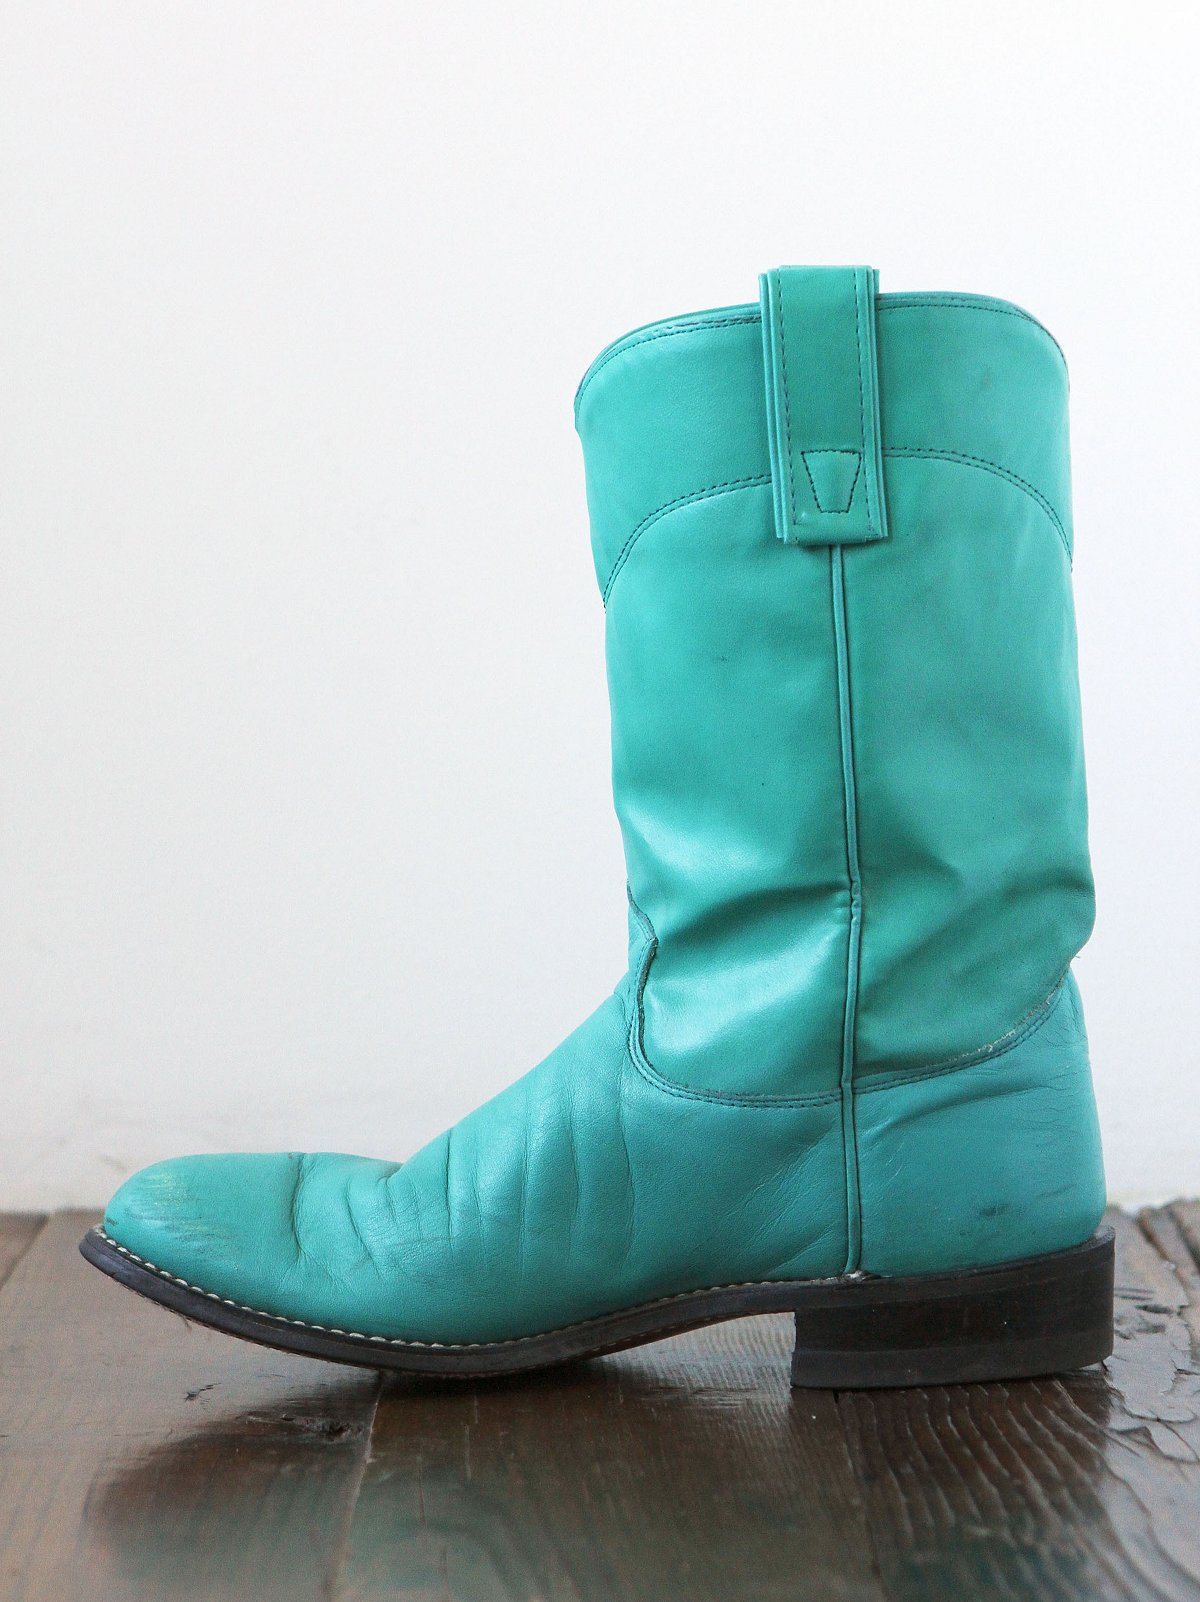 Vintage Turquoise Leather Western Boots